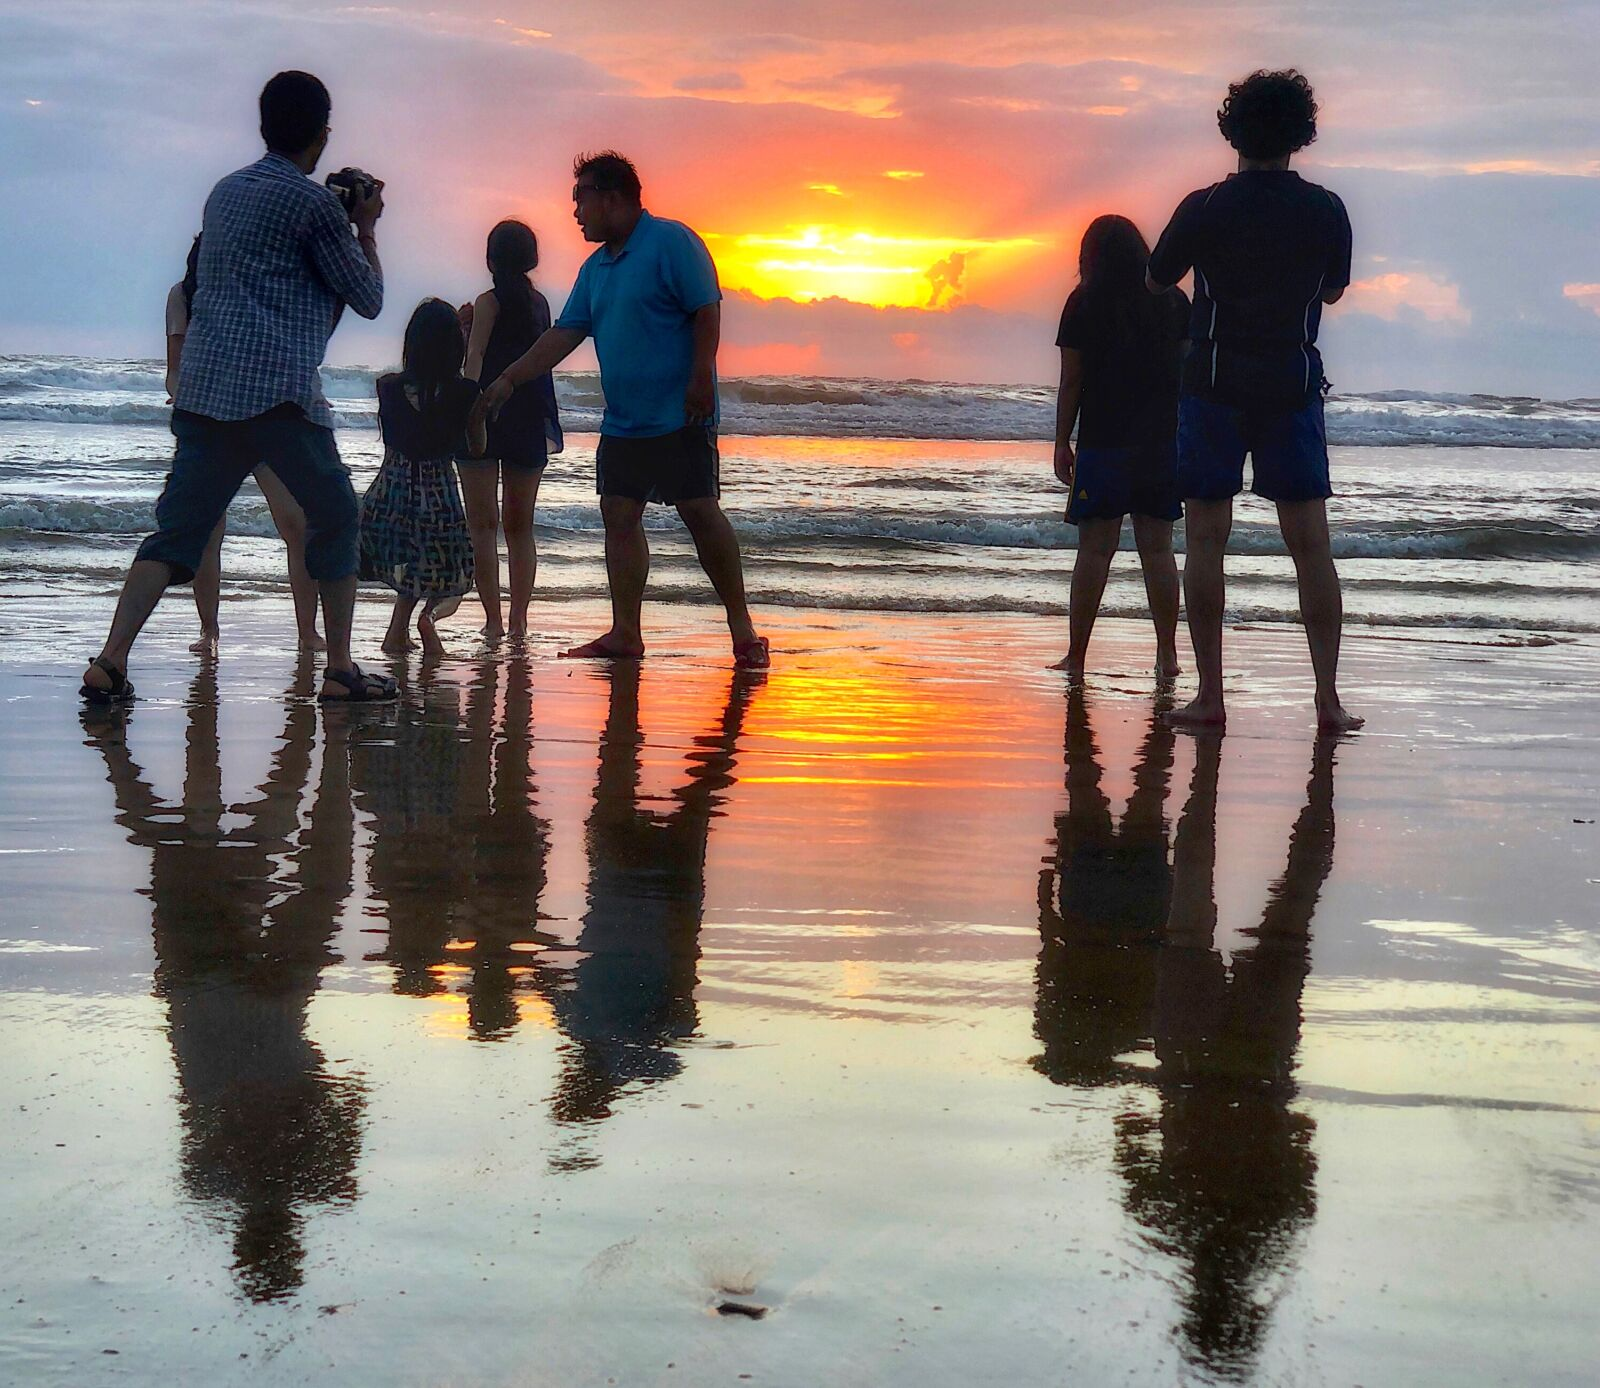 baga-beach-family-sunset-goa